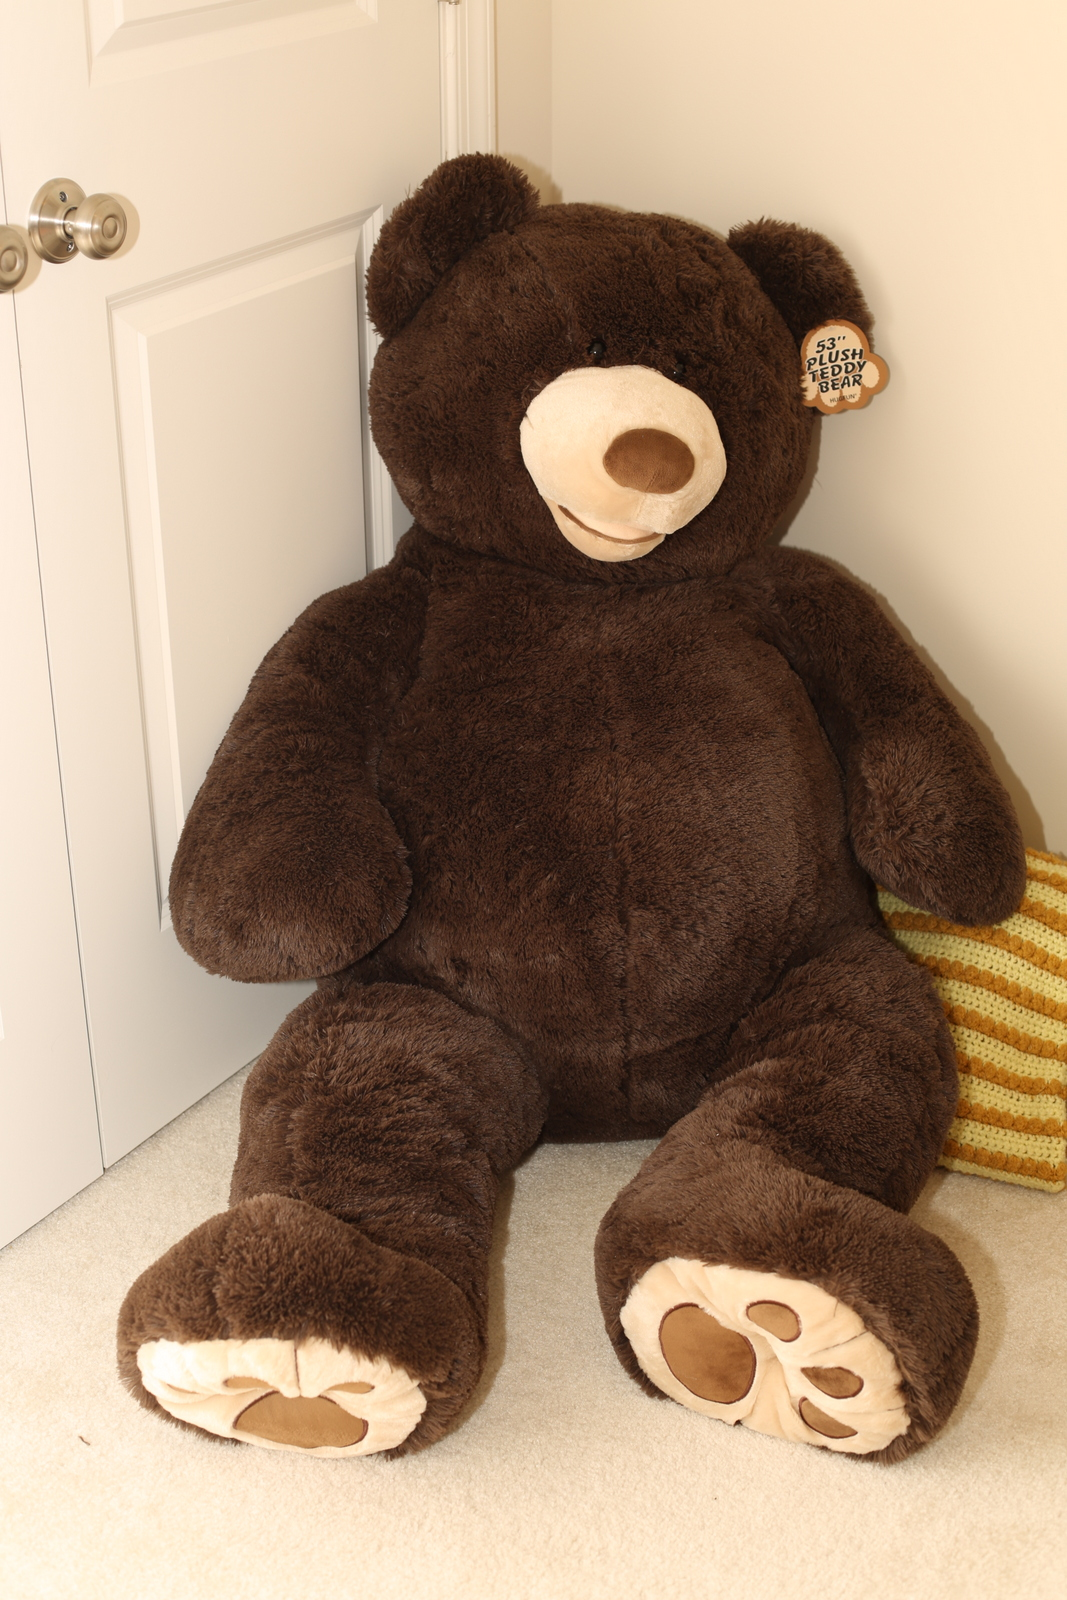 1000+ Images About Costco Bear On Pinterest